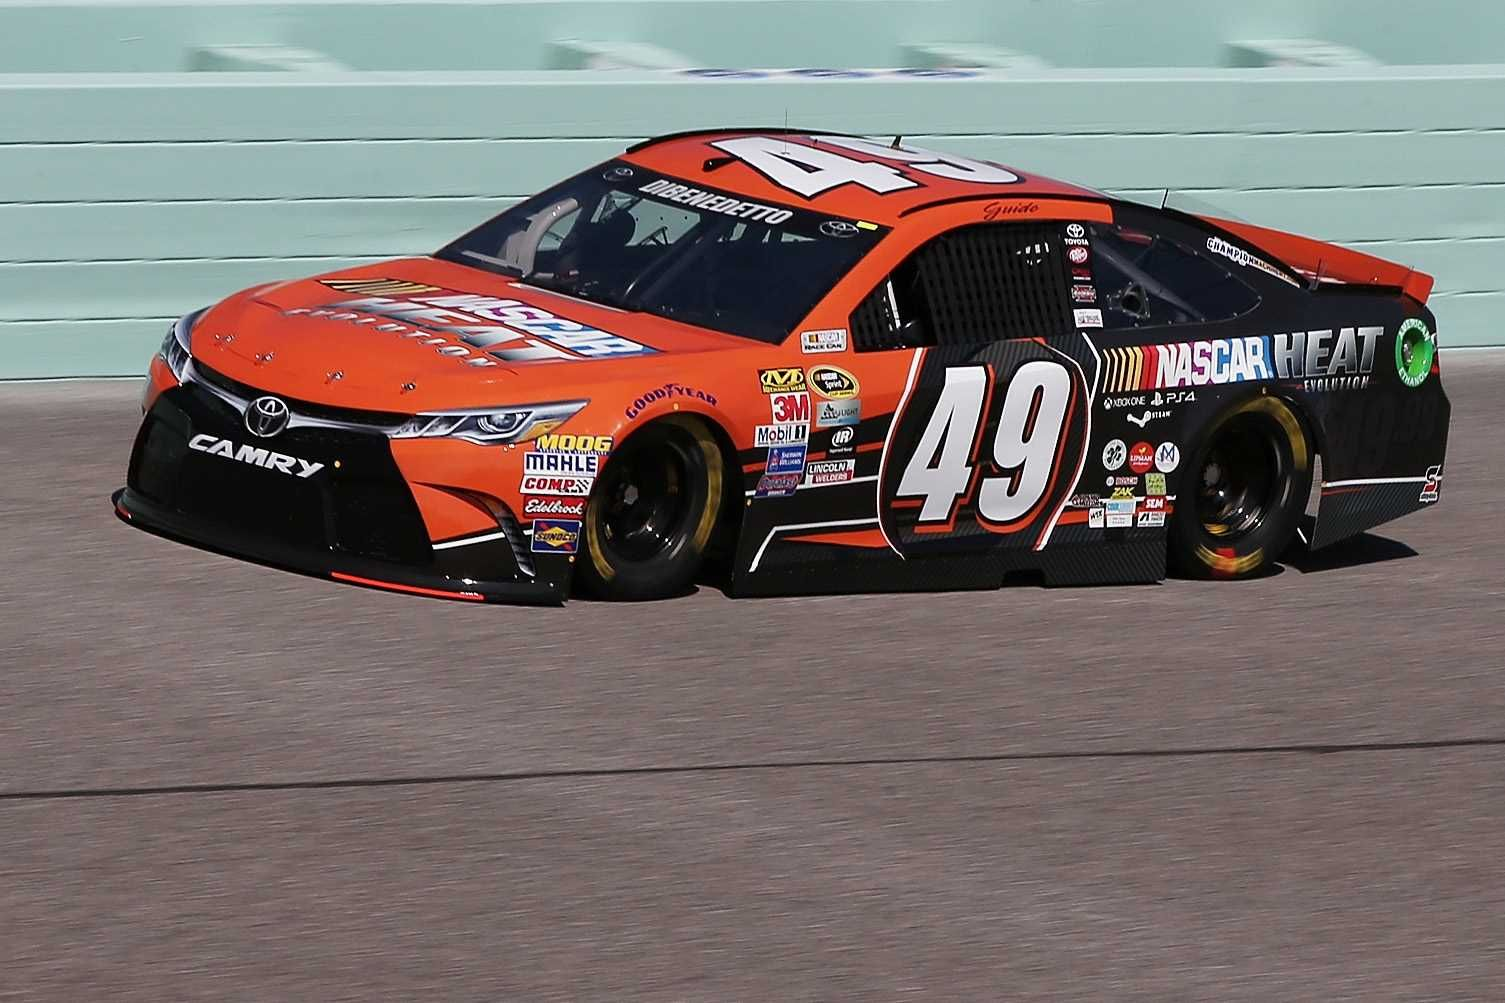 Gallery Landing Page Official Site Of Nascar Nascar Camry Racing